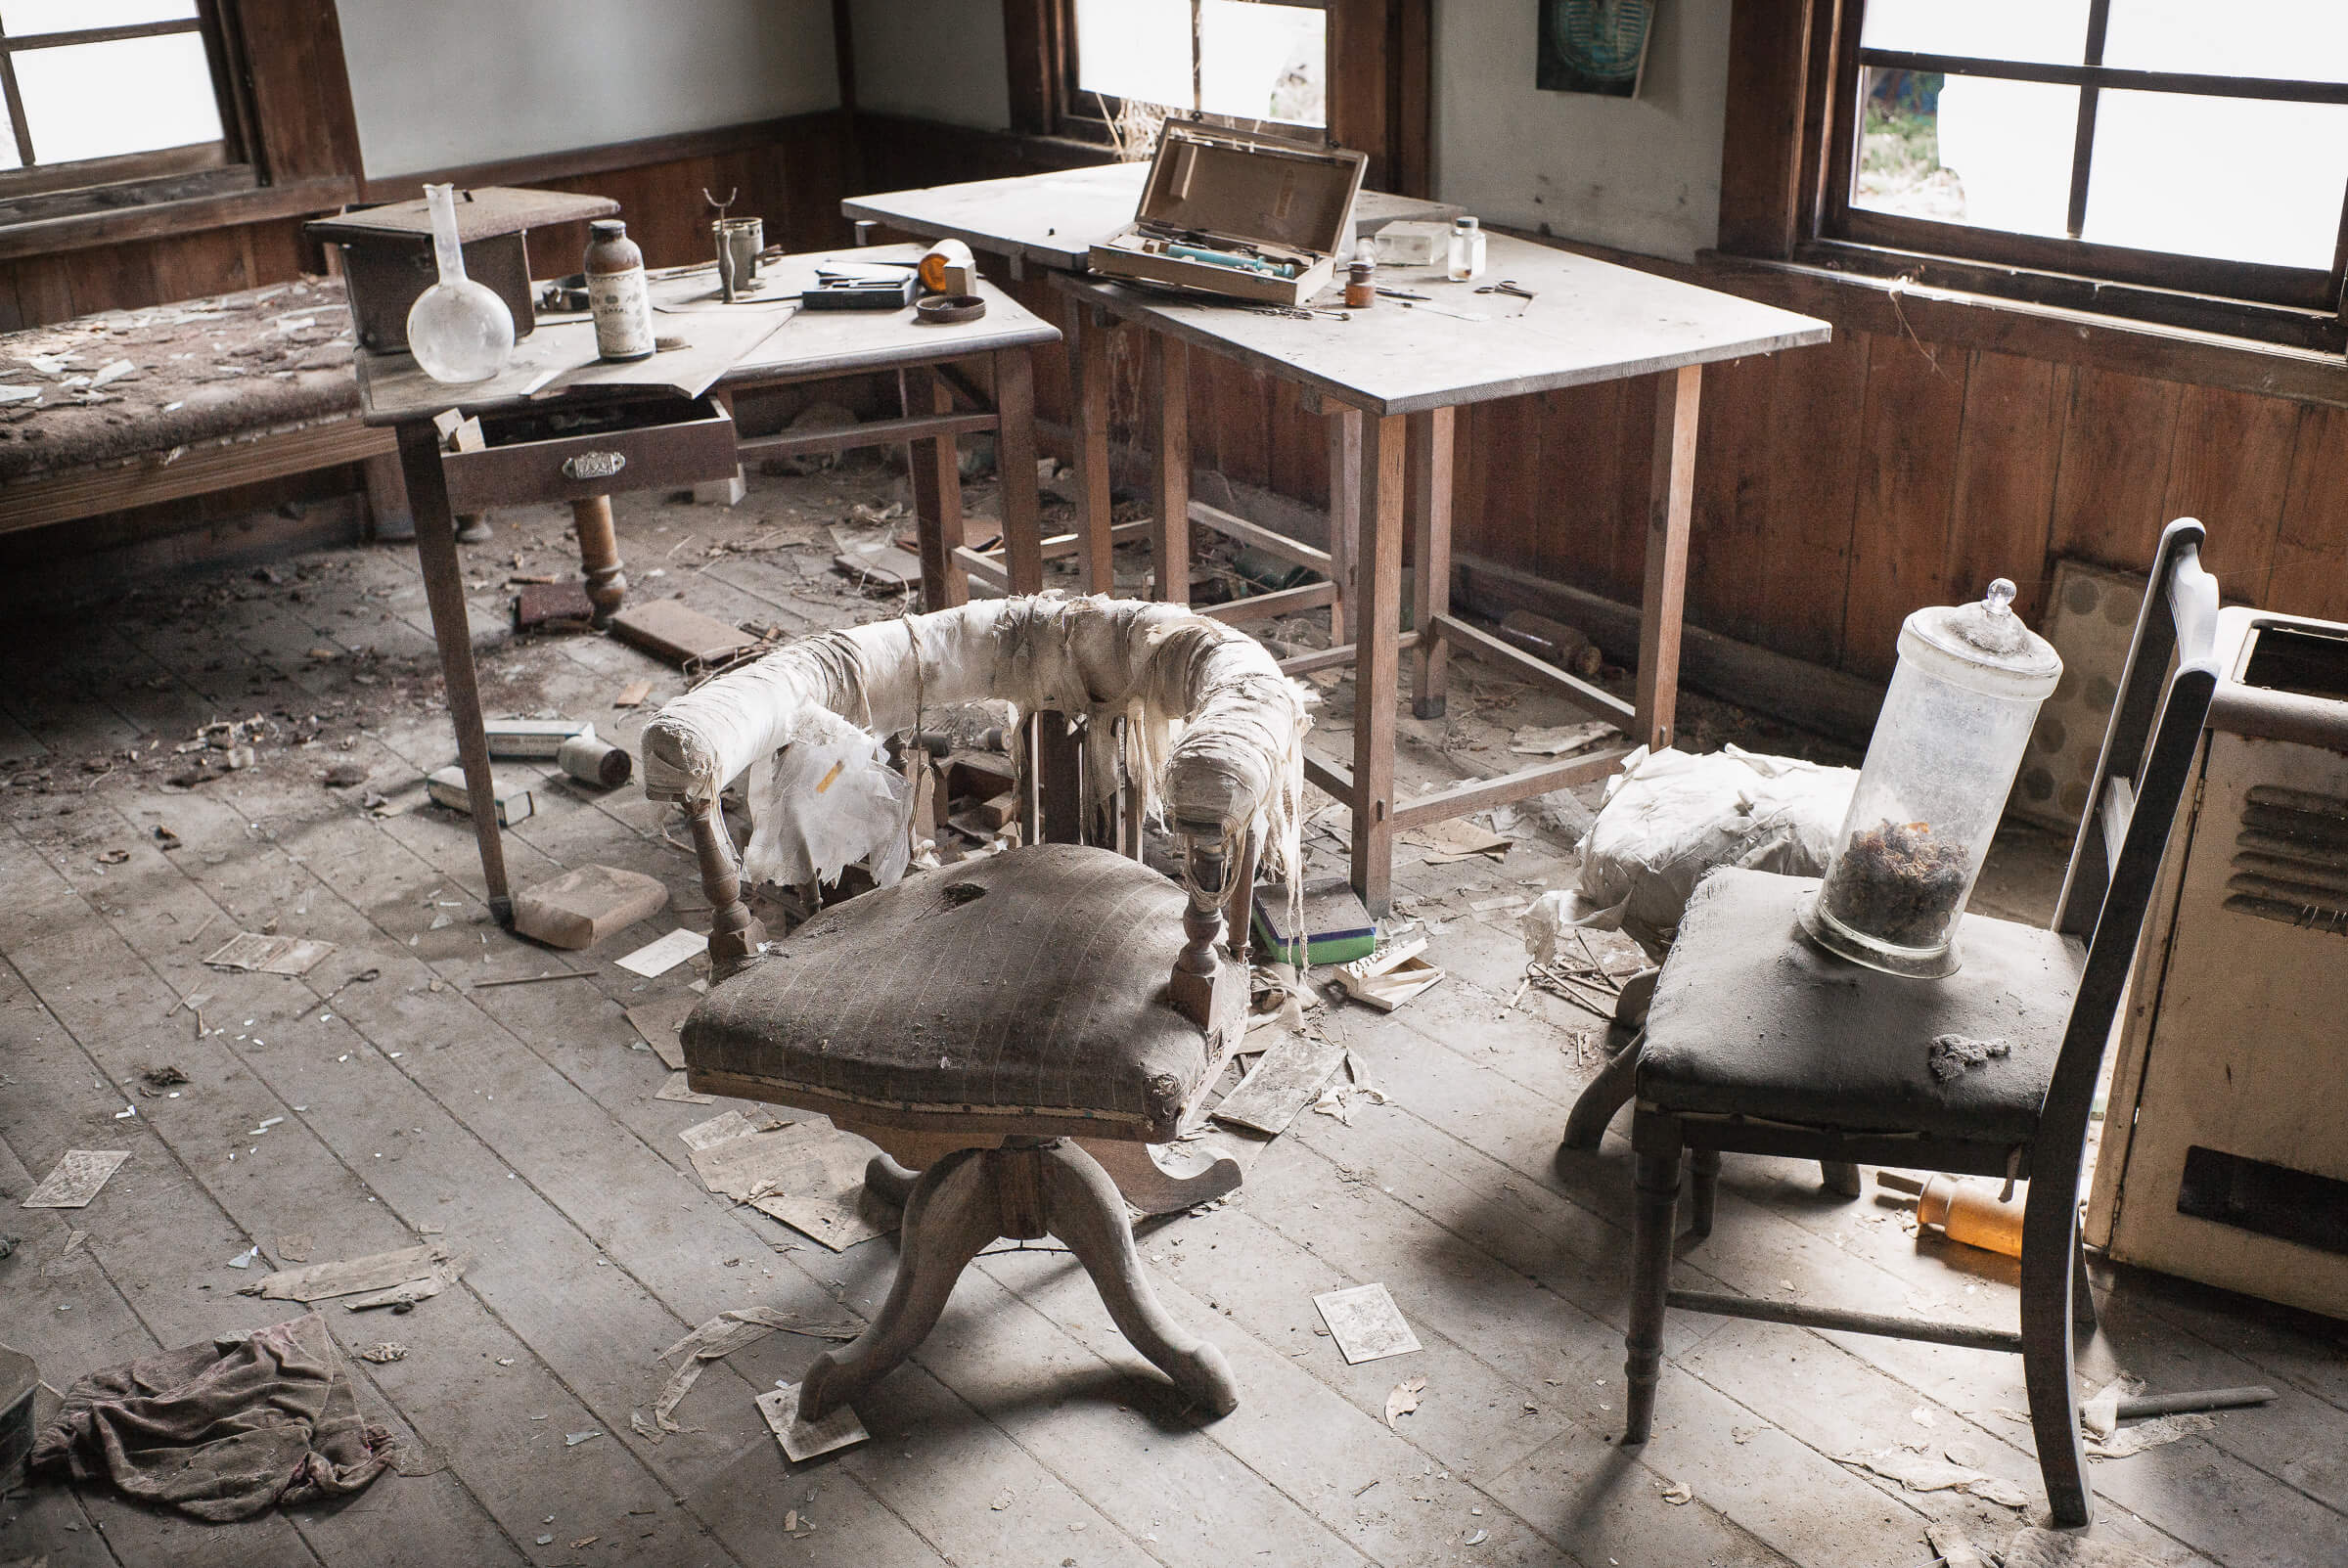 Building japanese furniture Mesmerizing Japanese Abandoned Old Japanese Clinic Tokyo Times An Abandoned And Slowly Decaying Japanese Clinic Tokyo Times